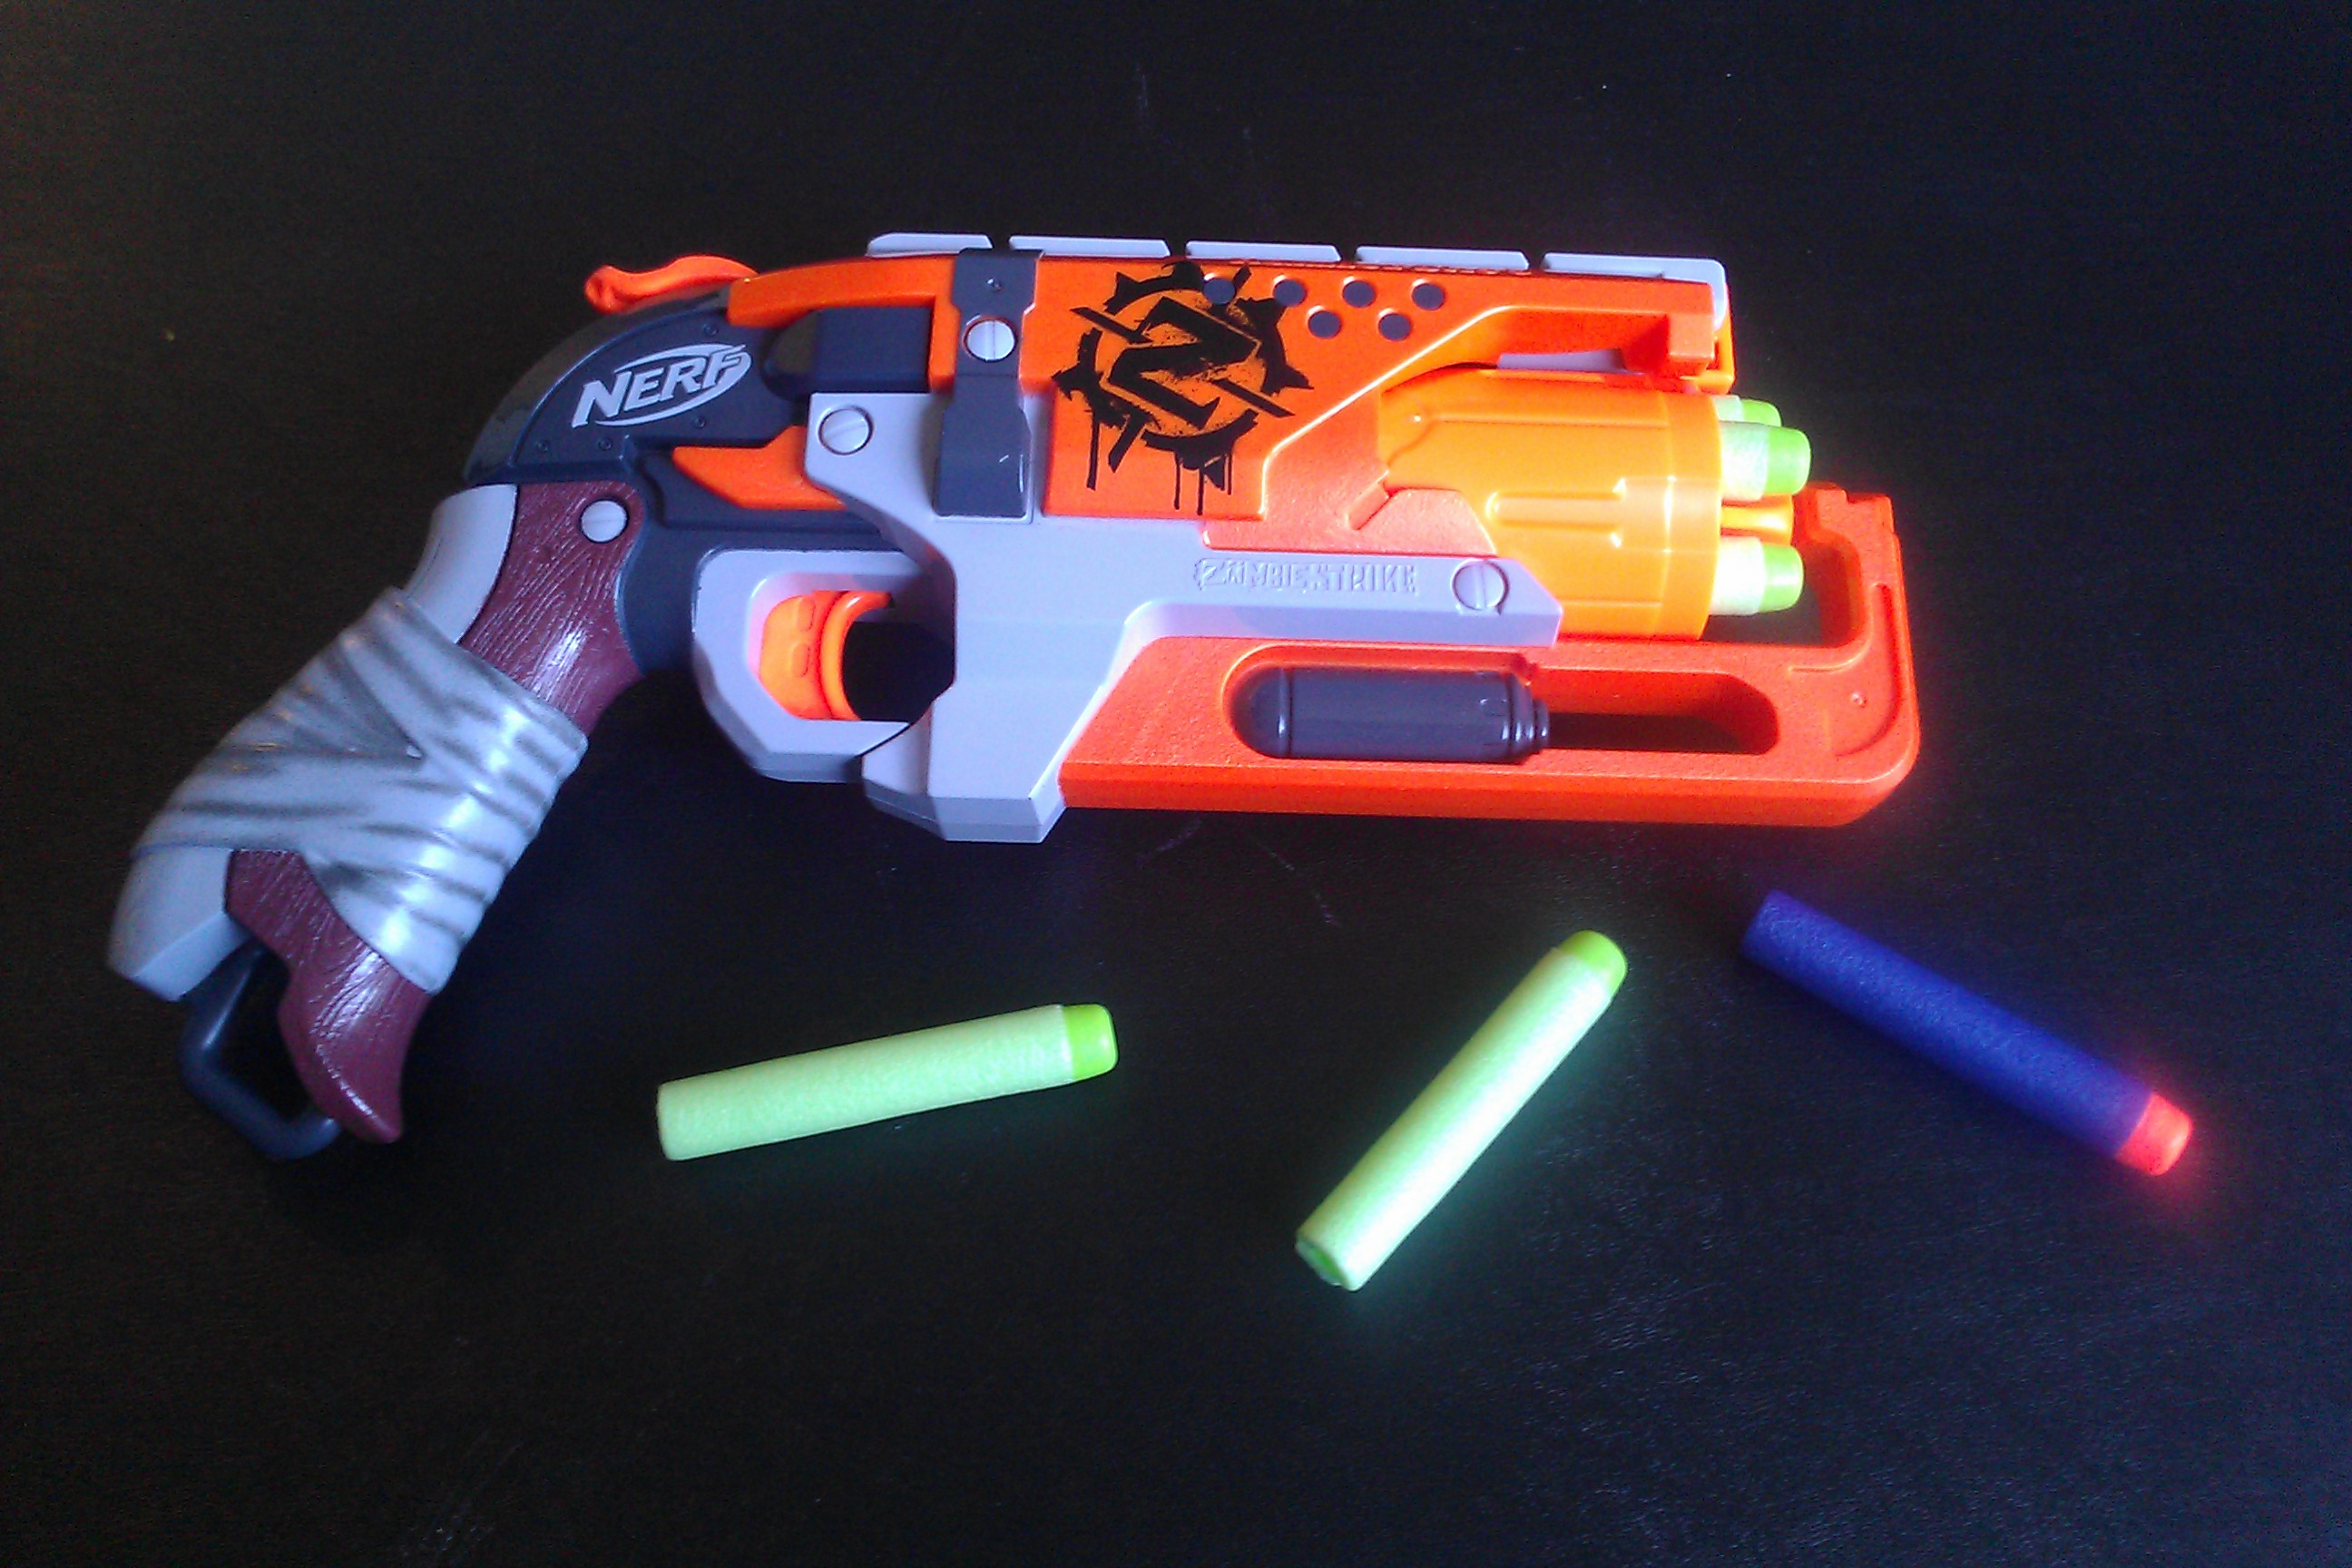 Three Tips and Tricks With the Nerf ZombieStrike Hammershot